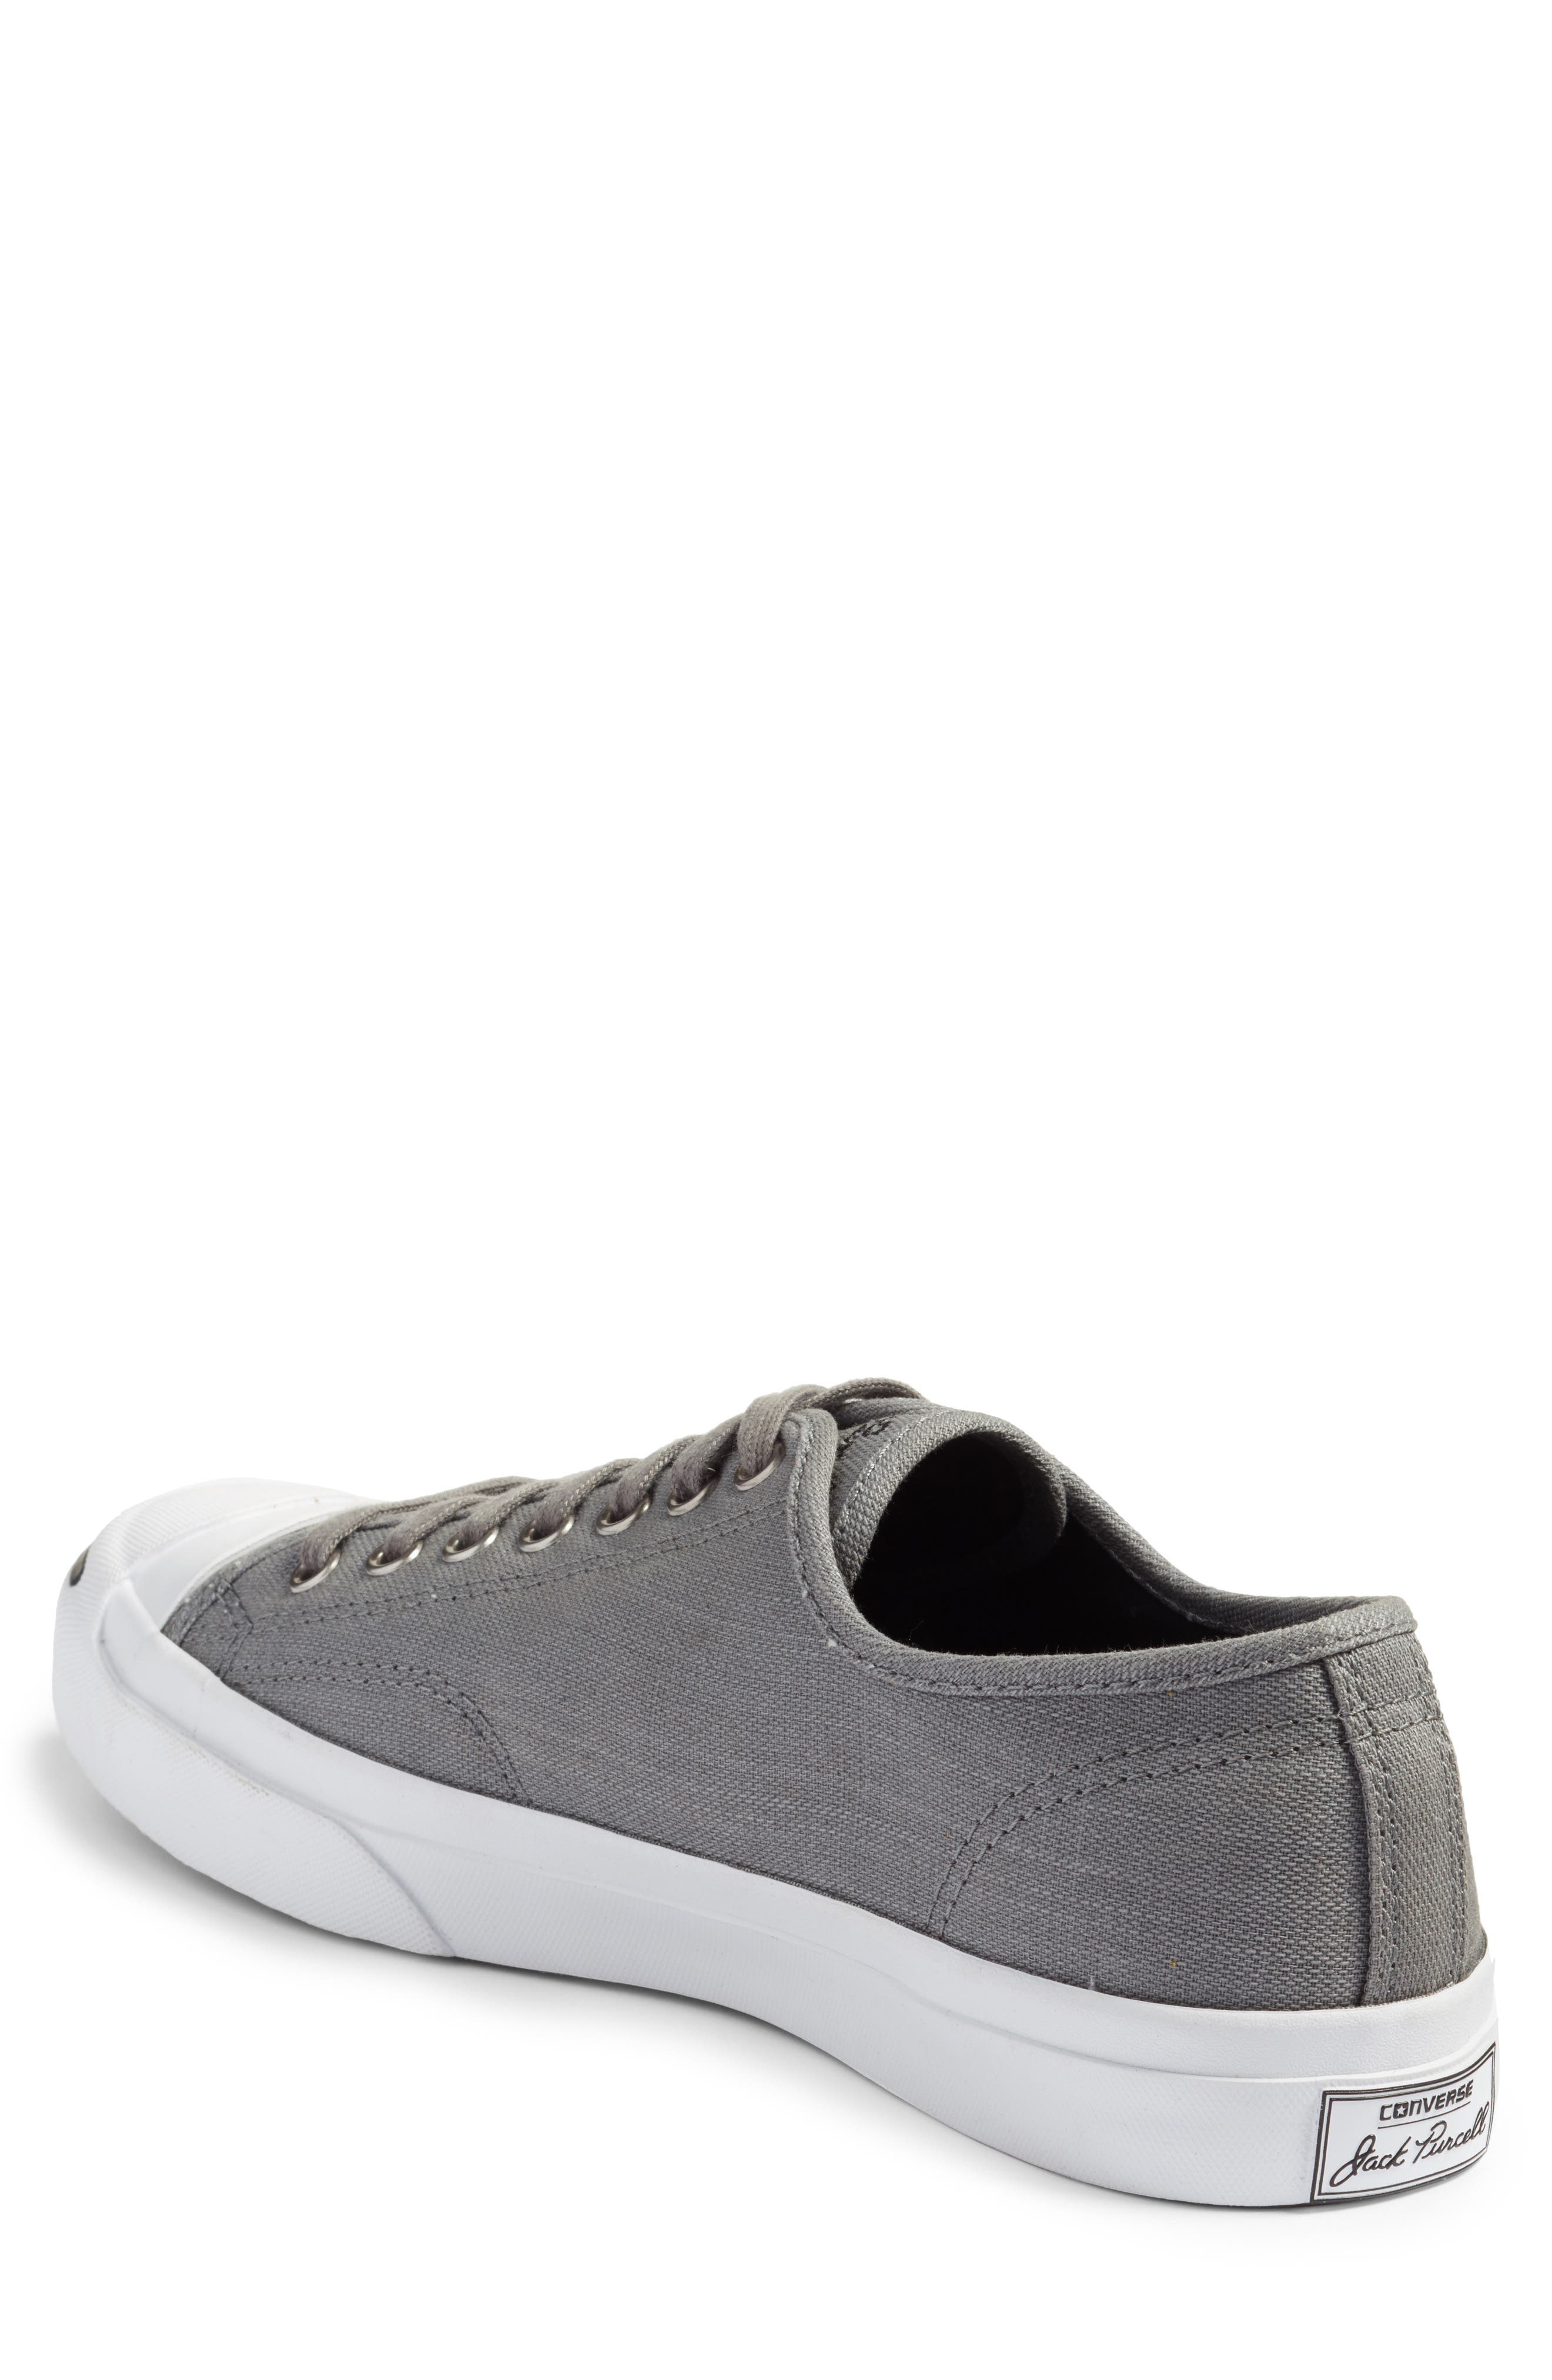 Jack Purcell Ox Sneaker,                             Alternate thumbnail 2, color,                             028